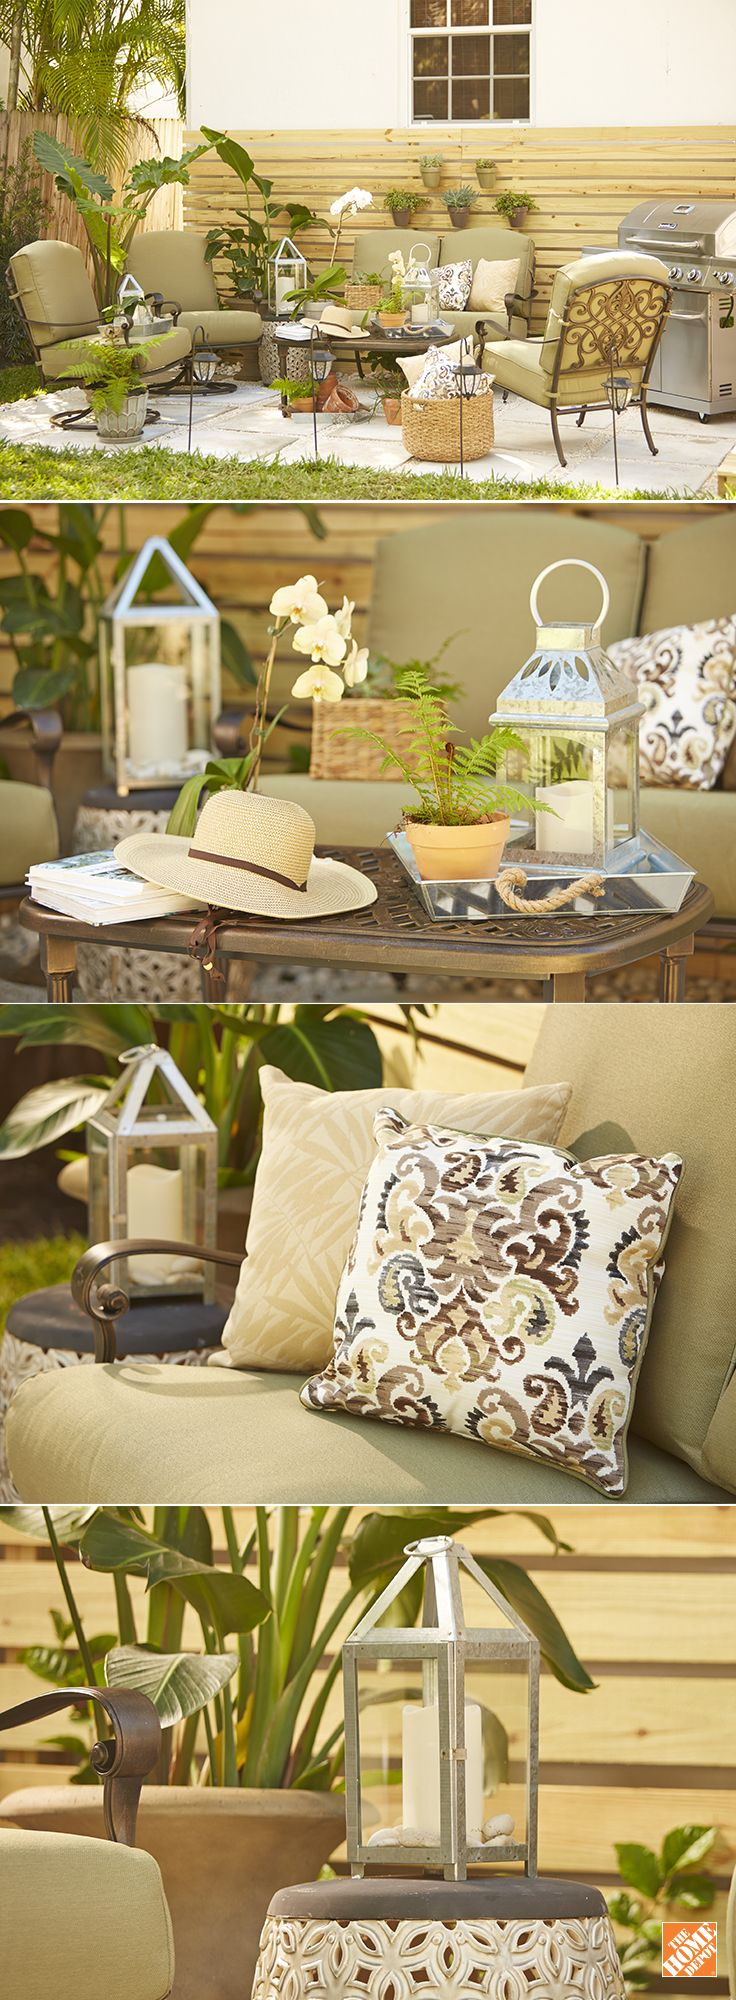 This Miami patio got a fresh look from design blogger Gloribell Lebron. See how she used the Edington seating set from Hampton Bay as the centerpiece of her earthy outdoor haven. Coordinating modern pillows, outdoor lanterns, and plenty of succulents and planters helped her create a backyard living space anyone could love. See it on The Home Depot Blog.